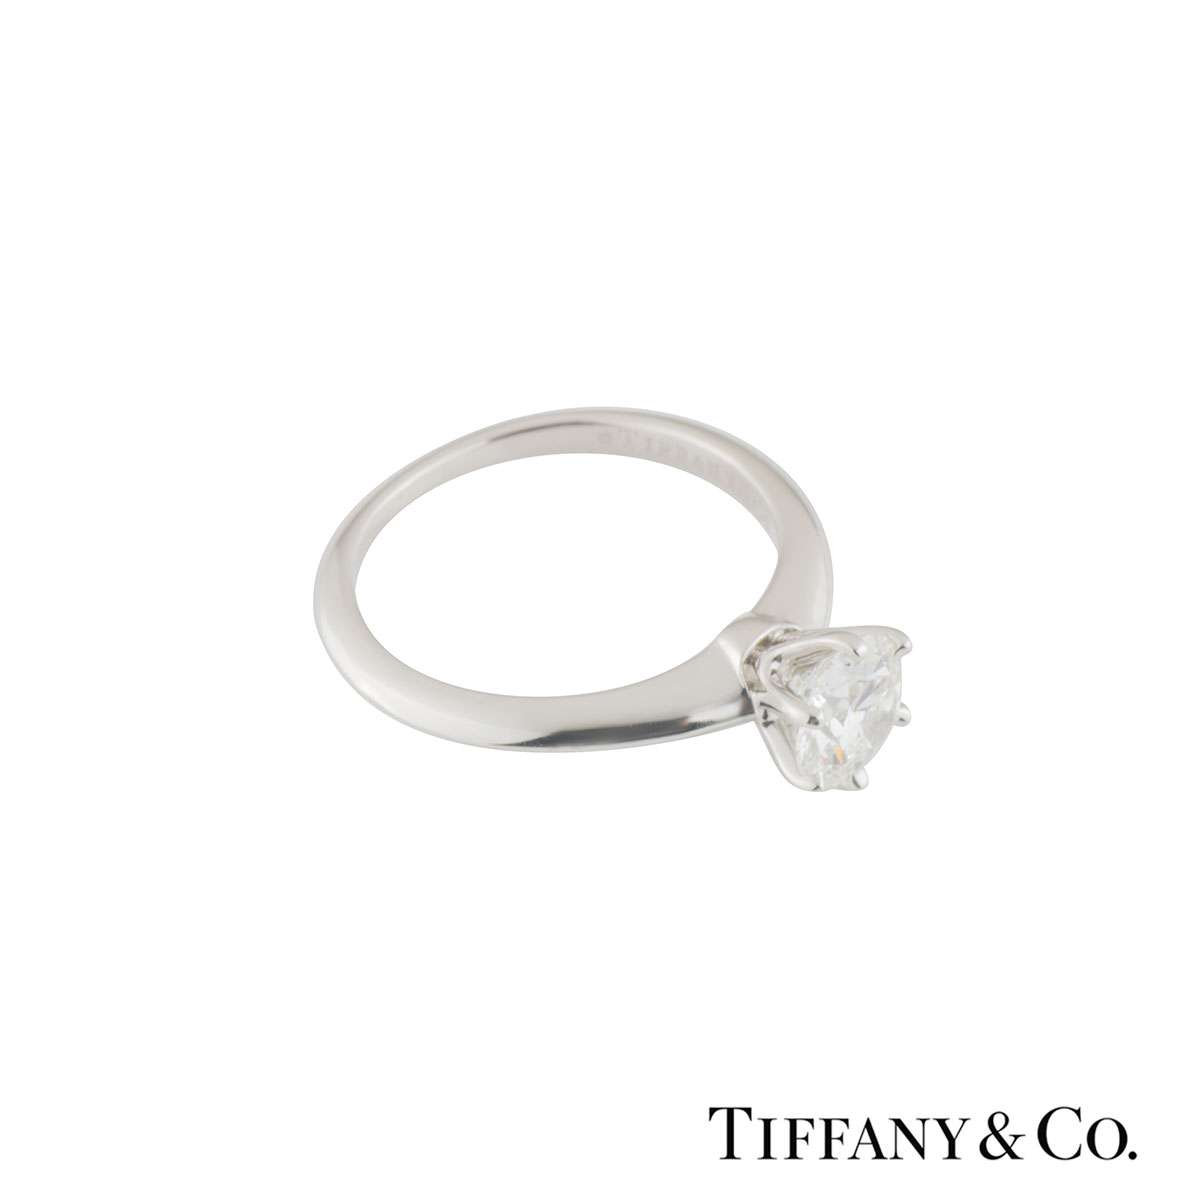 Tiffany & Co. Setting Band Ring XXX 1.12ct I/VVS1